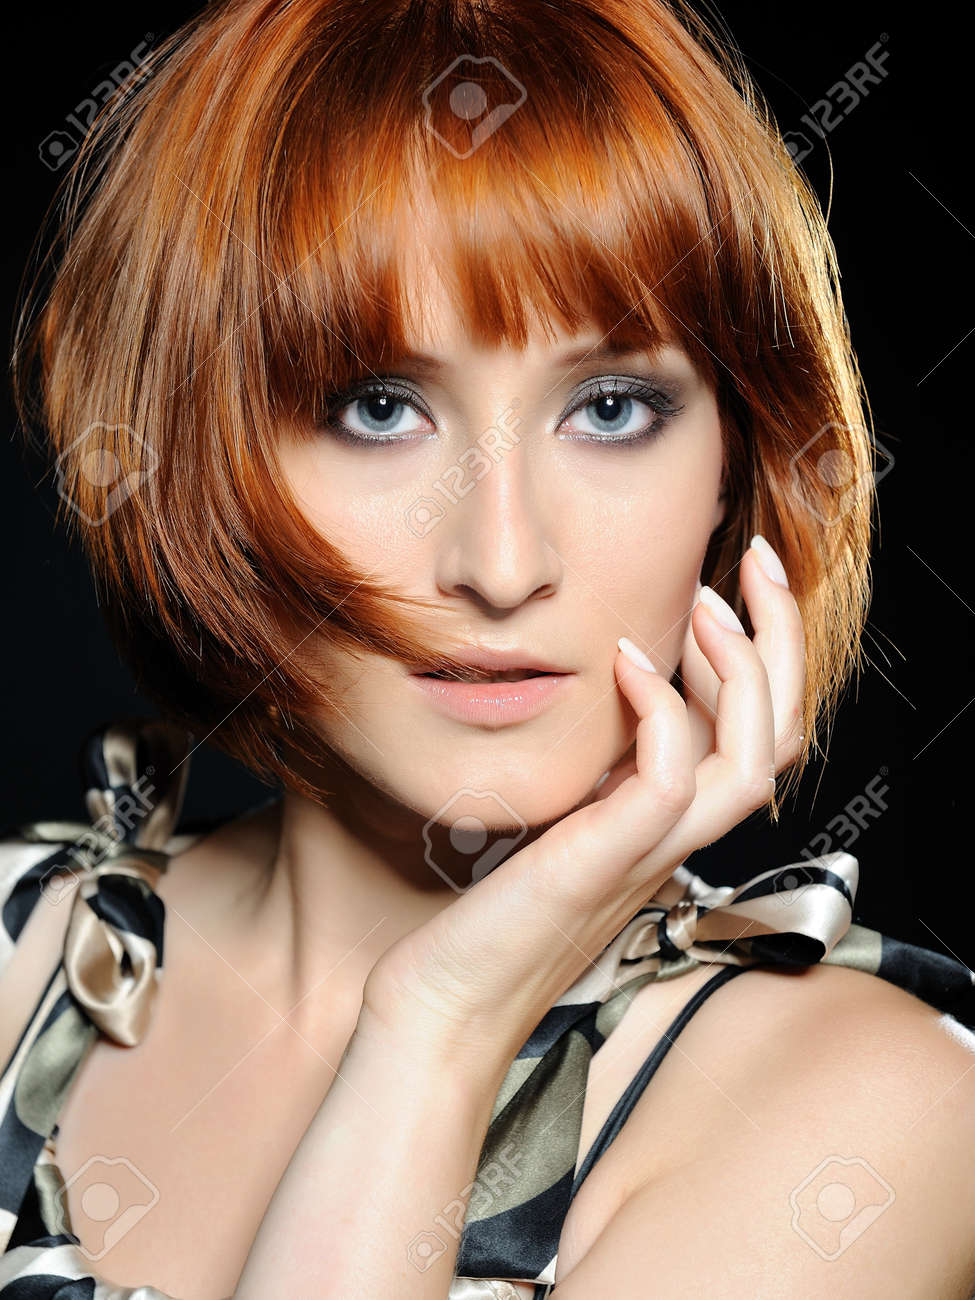 Beautiful red haired woman with fashion bob hairstyle and creative trendy make-up Stock Photo - 8328474